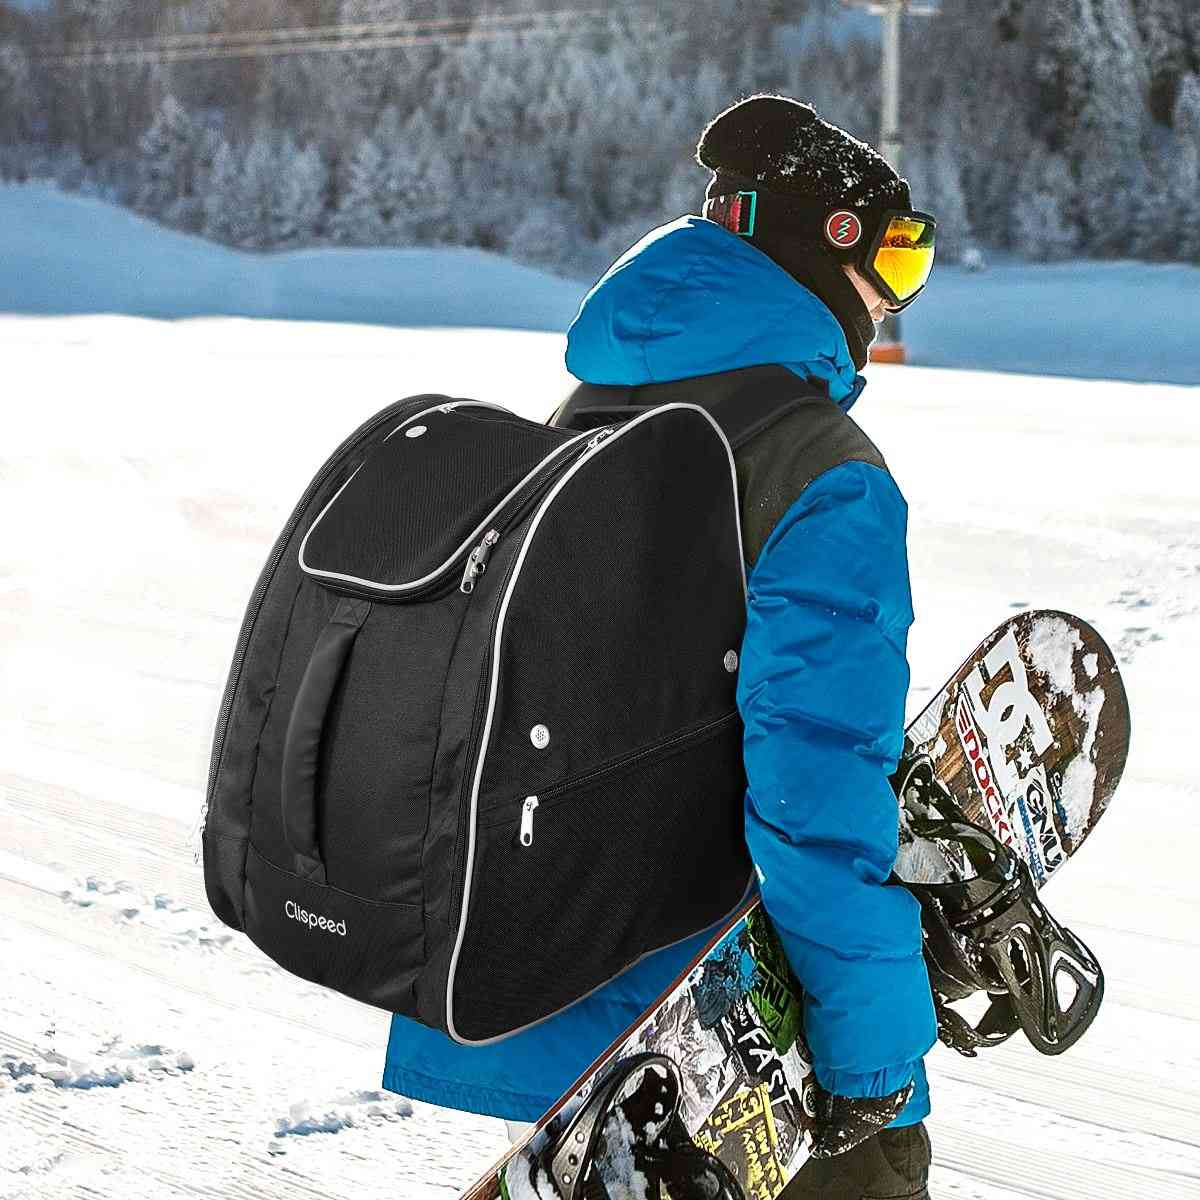 Ski Boot Bag, Travel Gear Backpack With Reflective Strips For Skiing And Snowboarding